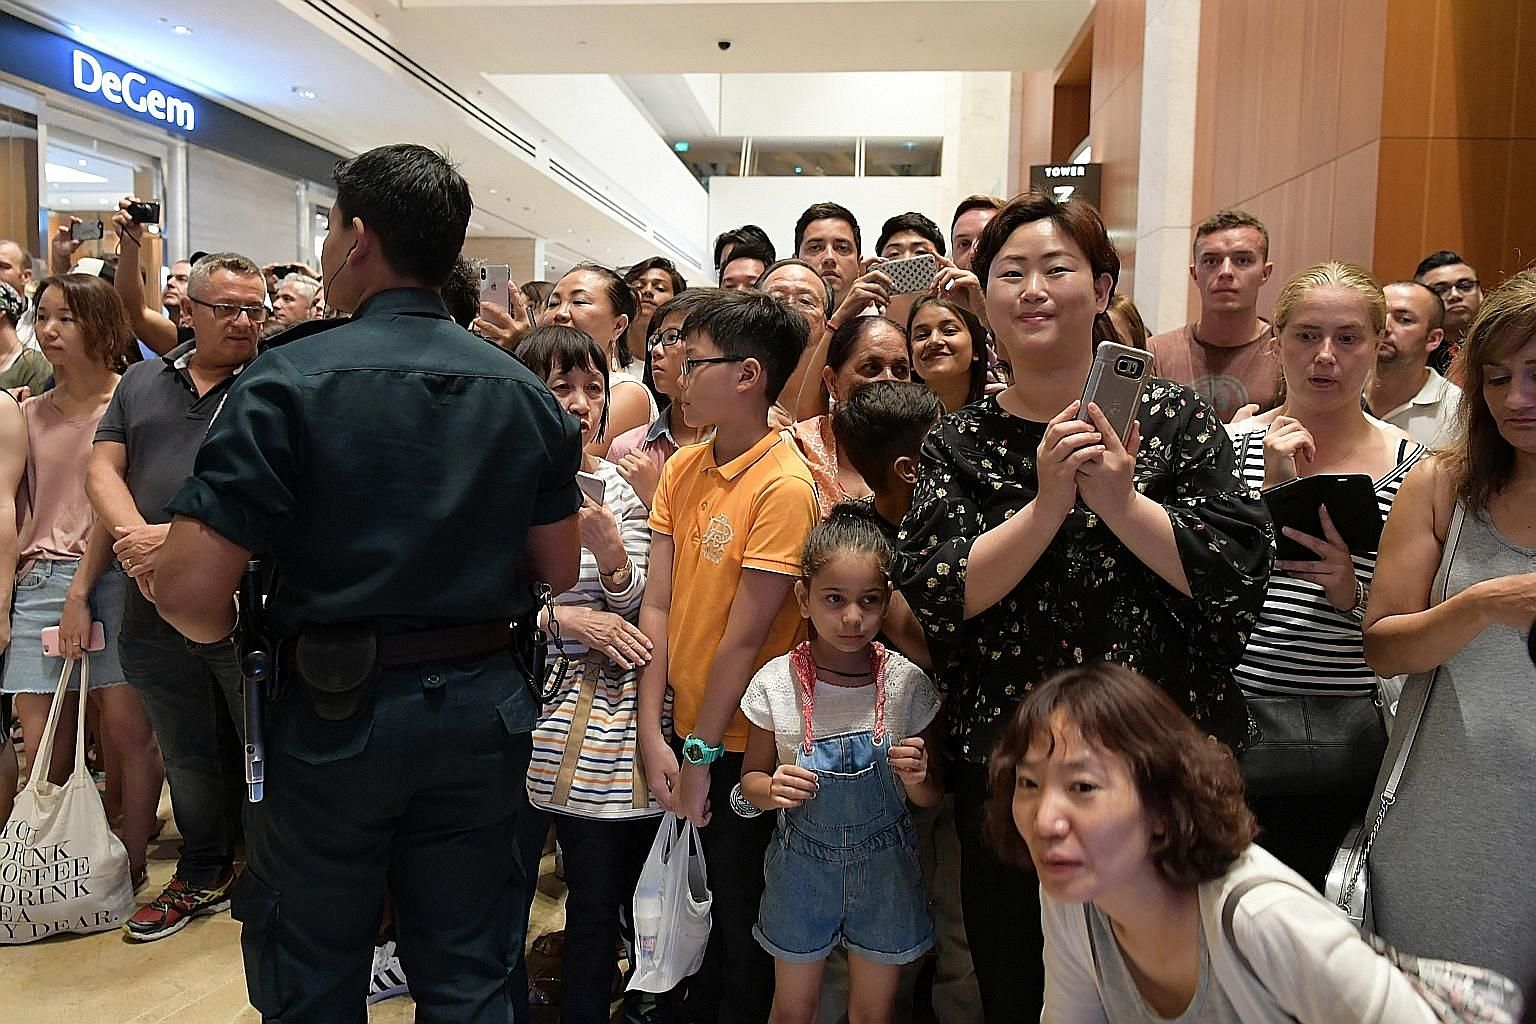 A crowd of curious onlookers gathering at Marina Bay Sands last night hoping to catch a glimpse of North Korean leader Kim Jong Un, who visited the integrated resort as part of a city tour that also included Gardens by the Bay.